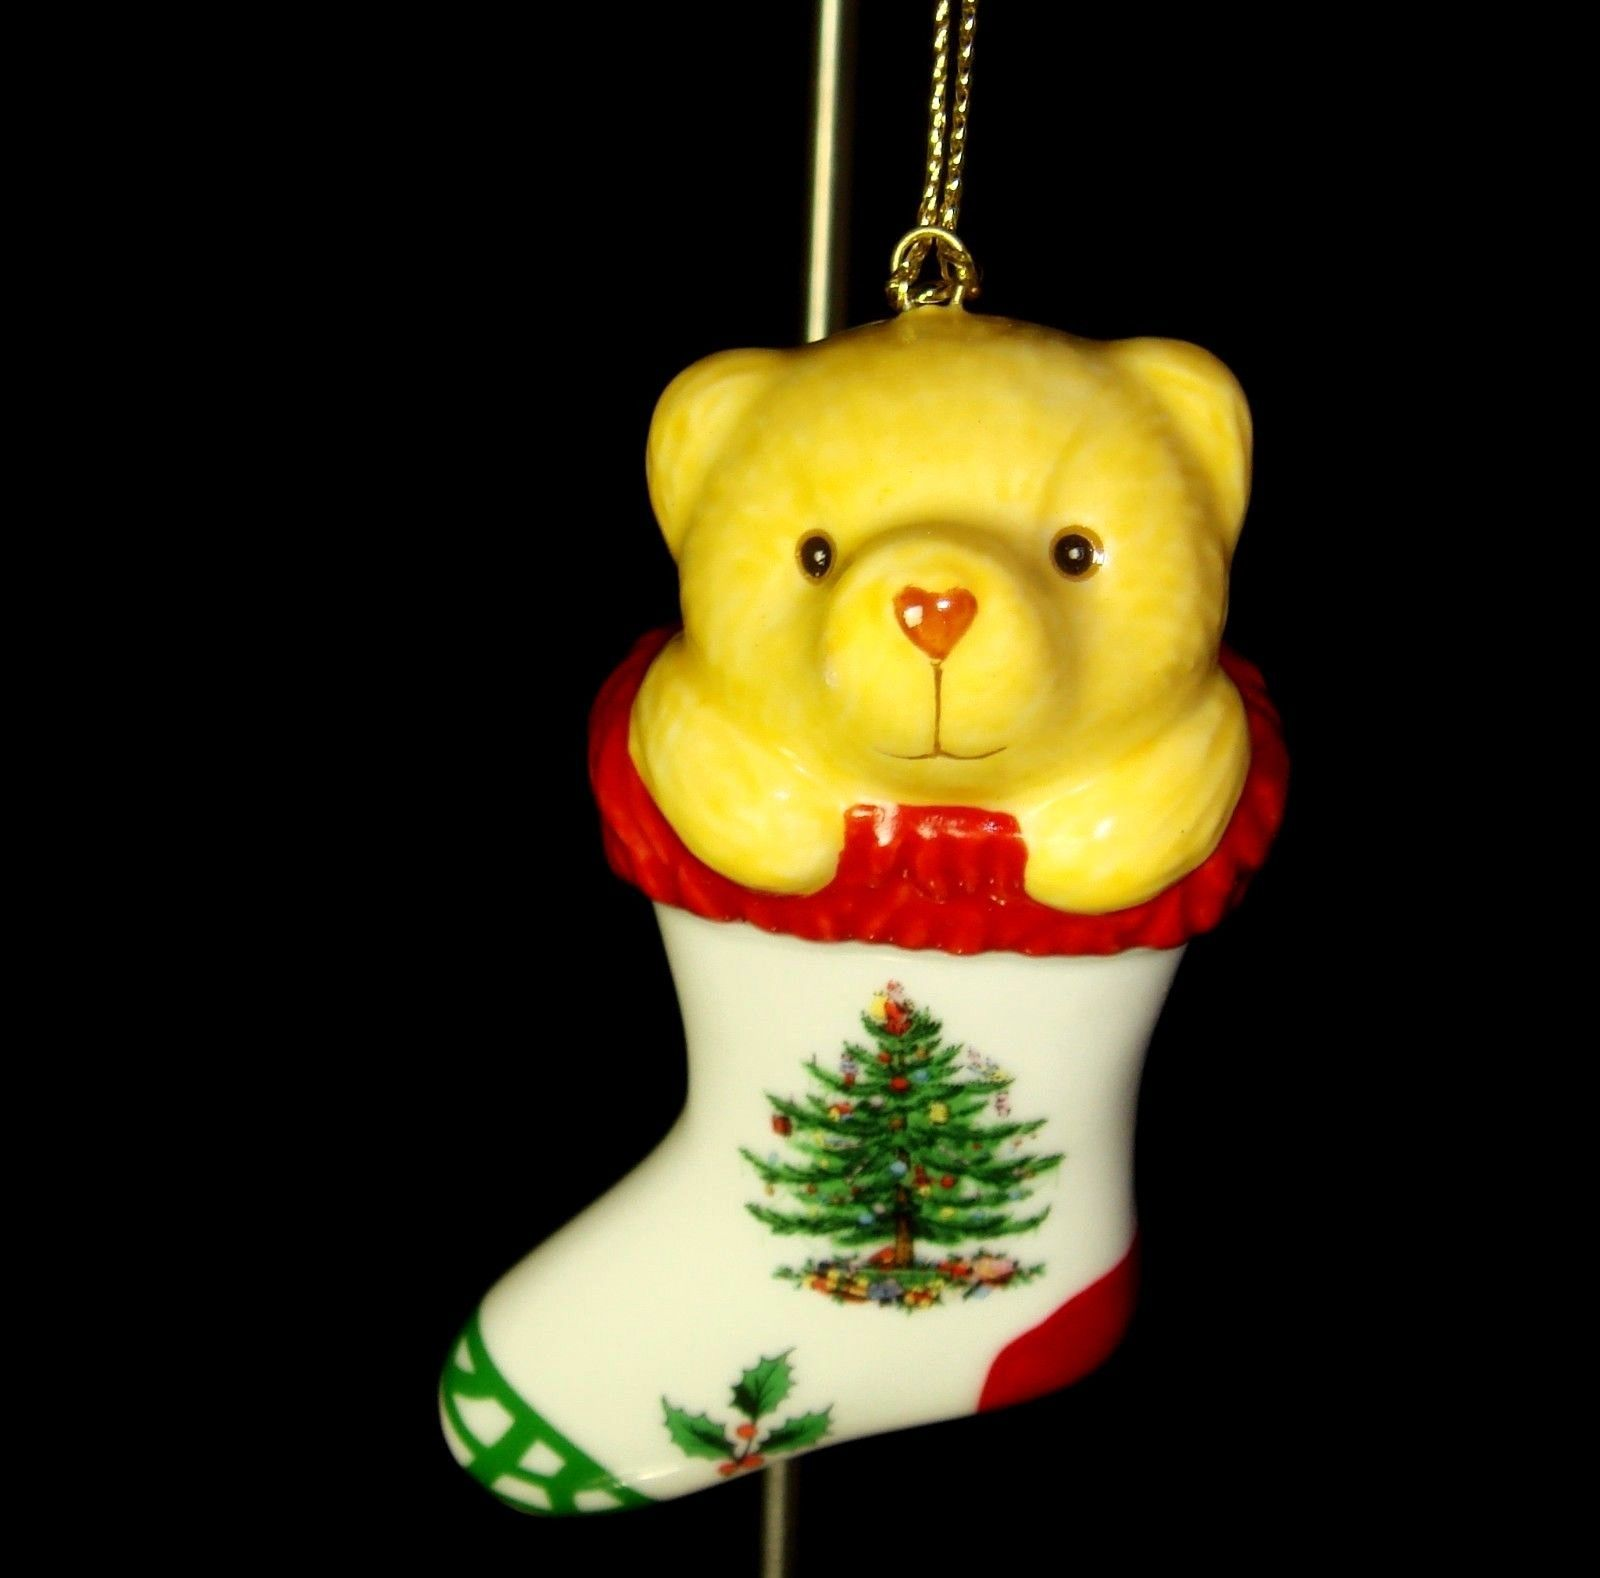 Spode Christmas Tree Sale: SPODE Christmas Tree TEDDY BEAR In STOCKING Ornament NEW